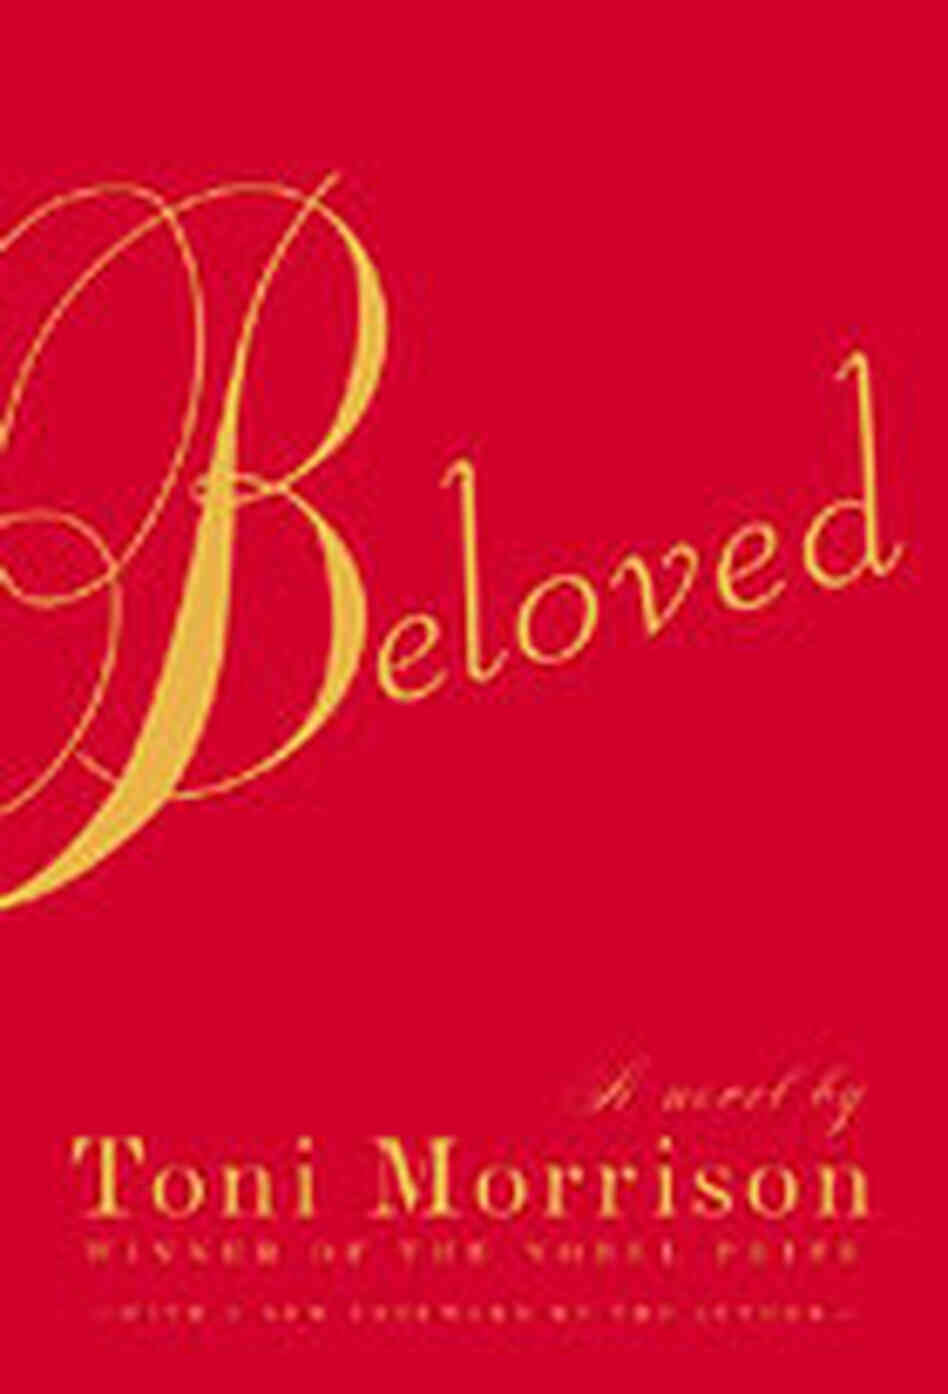 'Beloved' book cover